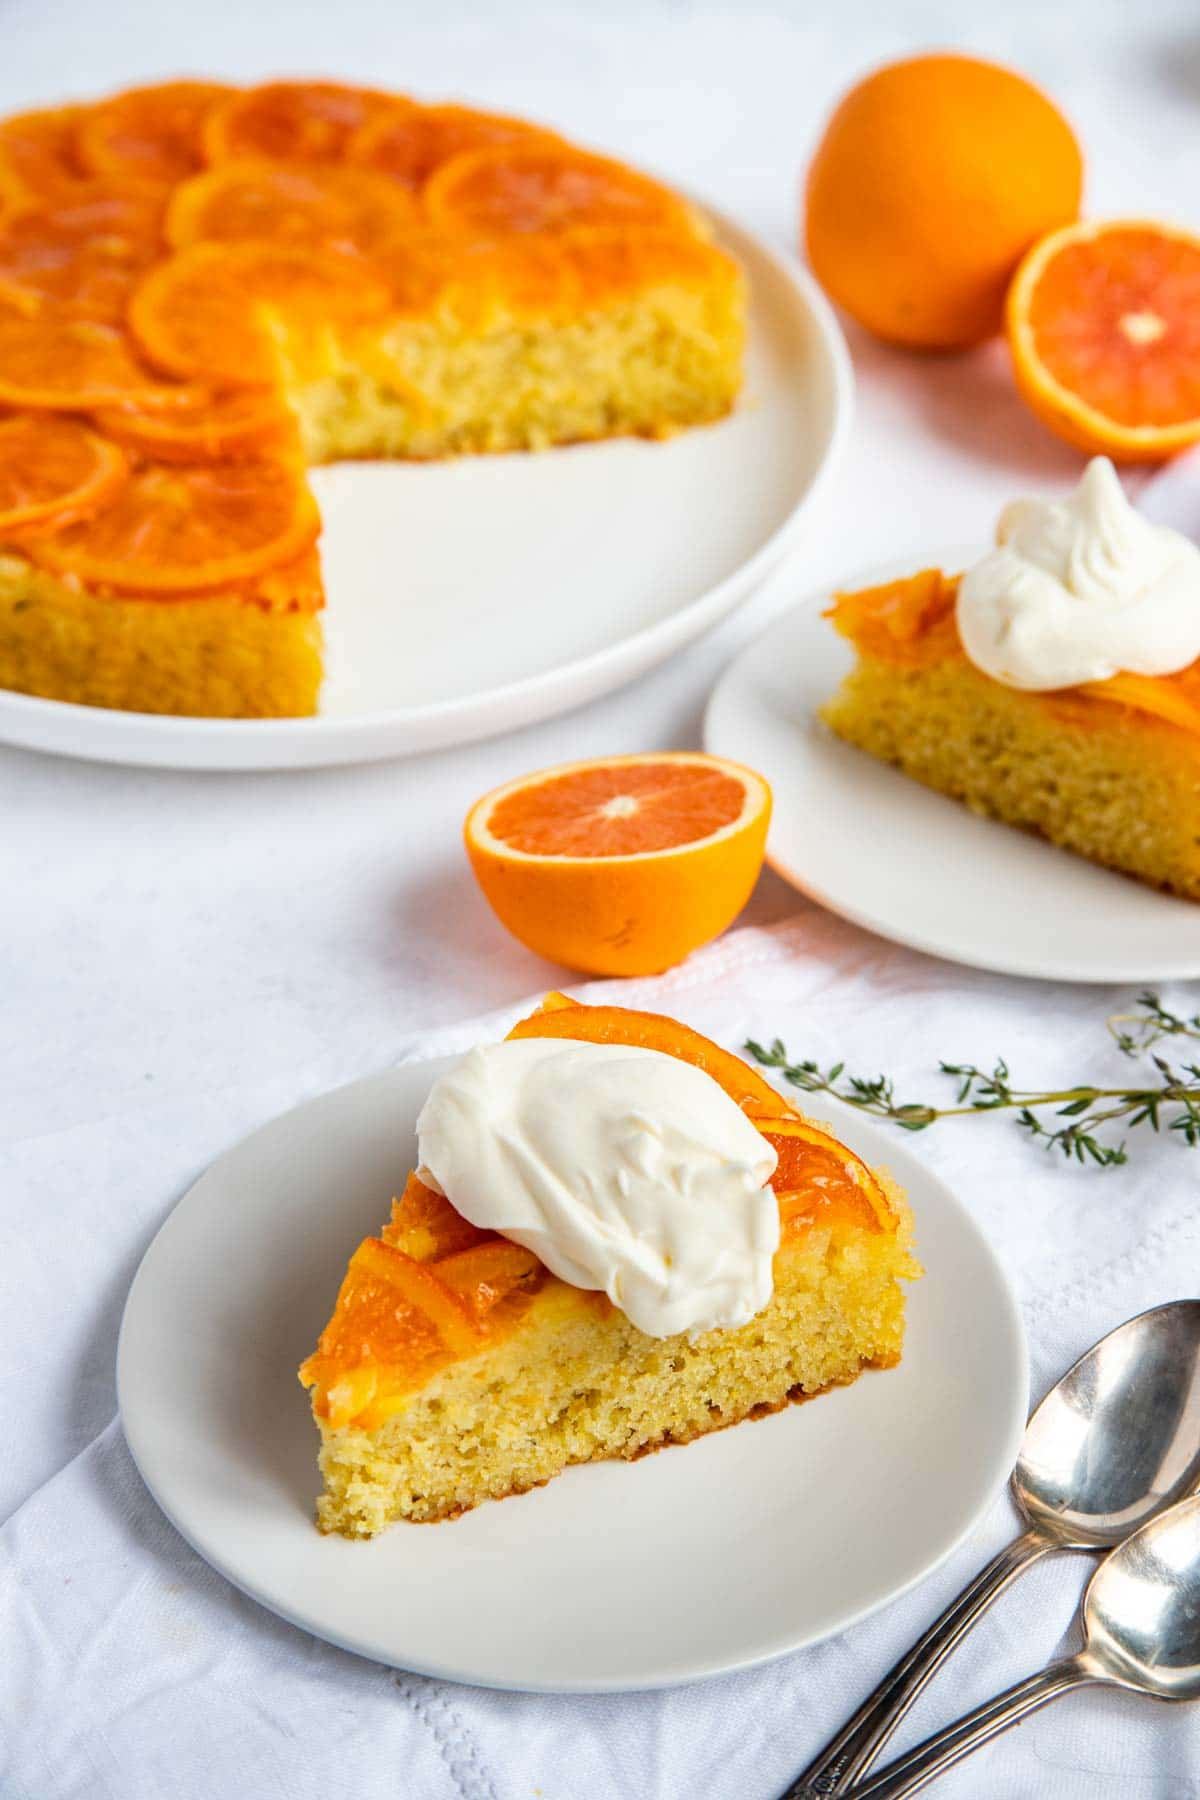 Orange upside-down cake on a plate surrounded by whole and cut oranges and two slices of cake on dessert plates with whipped creme fraiche